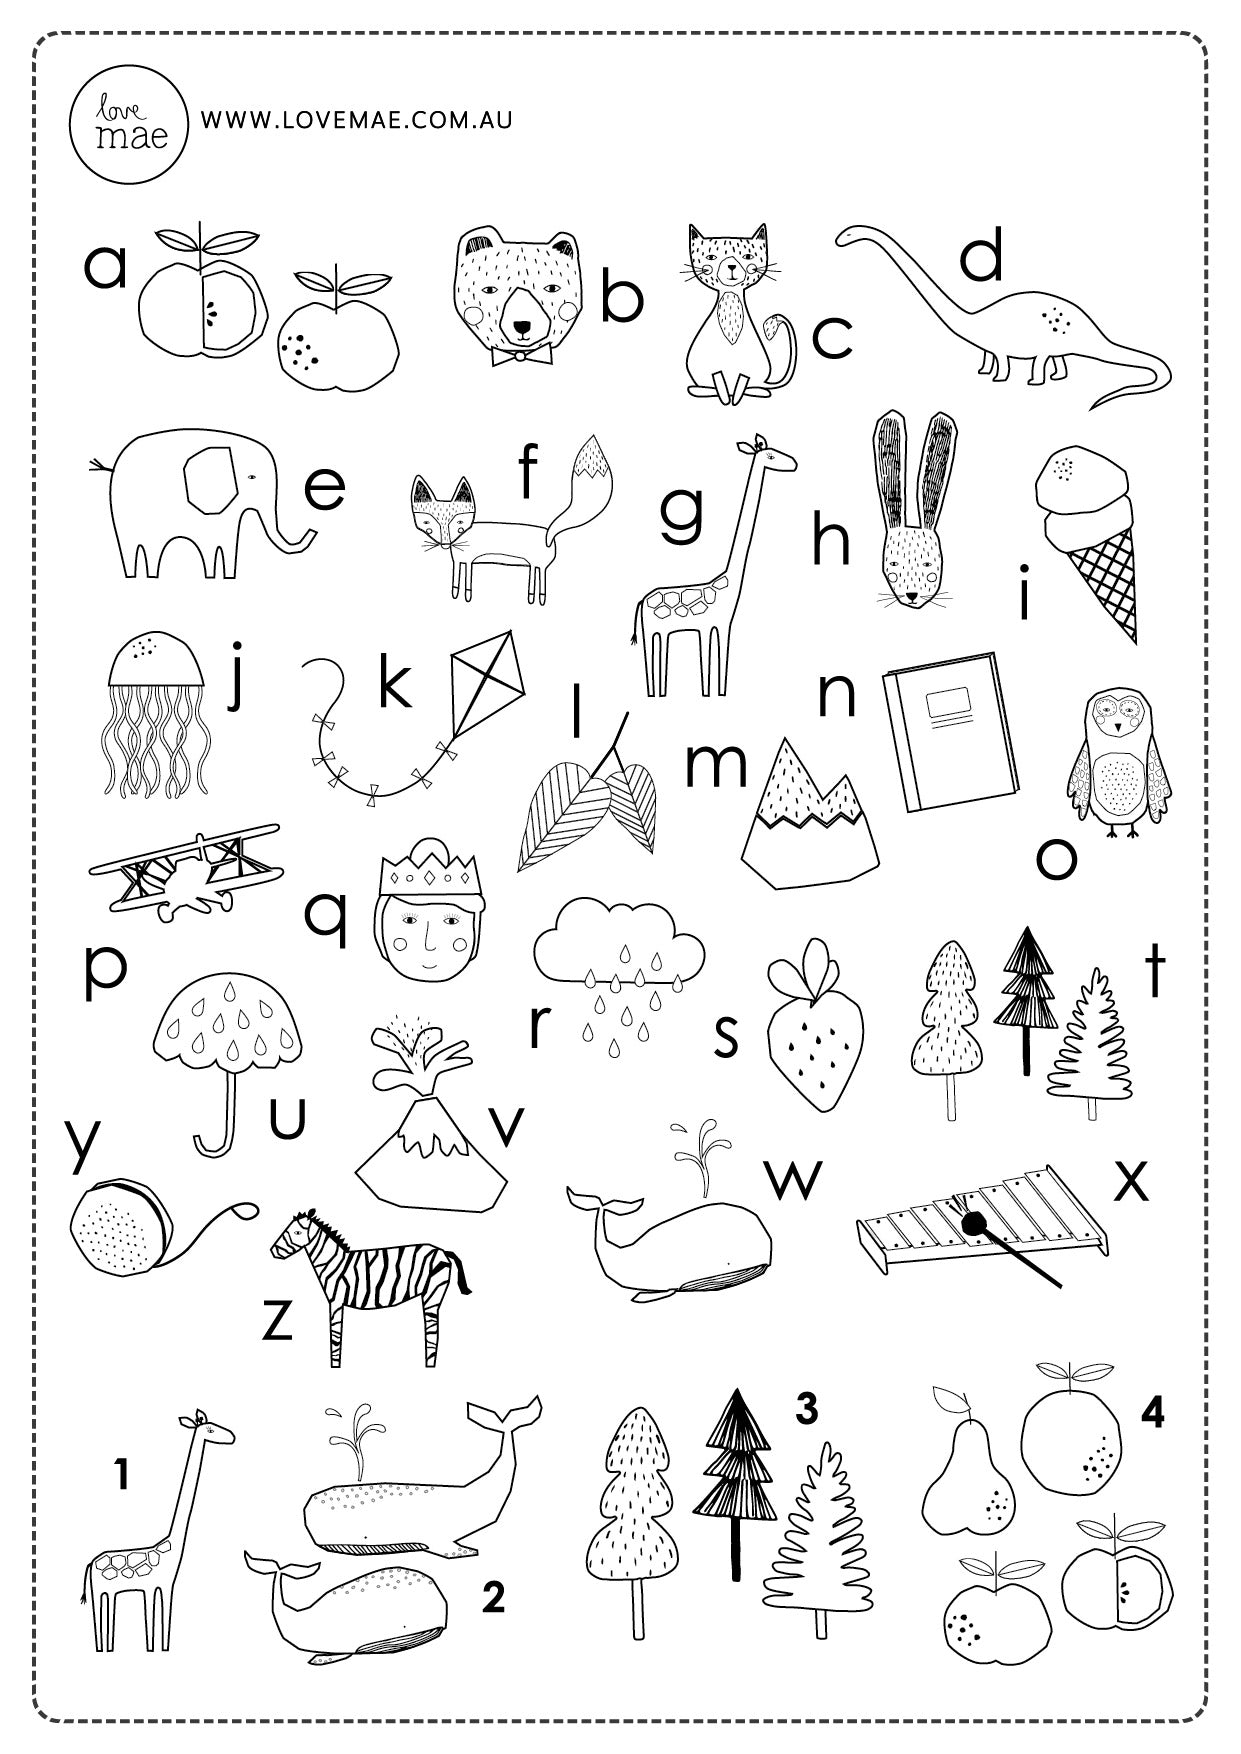 ABC_Alphabet_Kids_Illustration_Download_For_Kids_Colouring_In